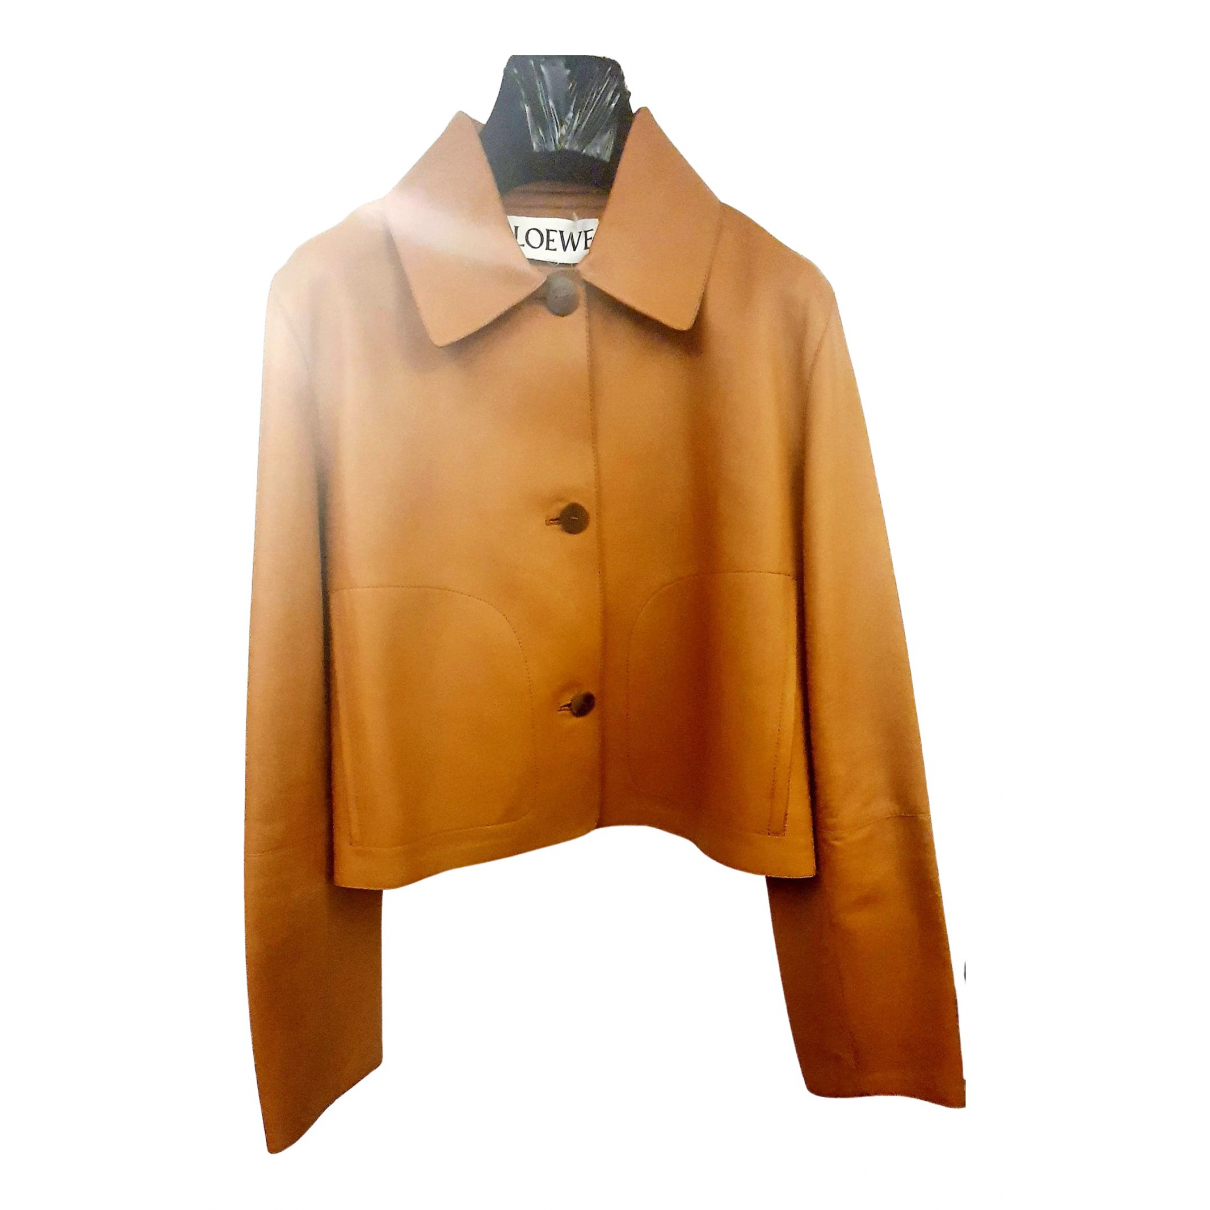 Loewe N Brown Leather Leather jacket for Women 38 FR